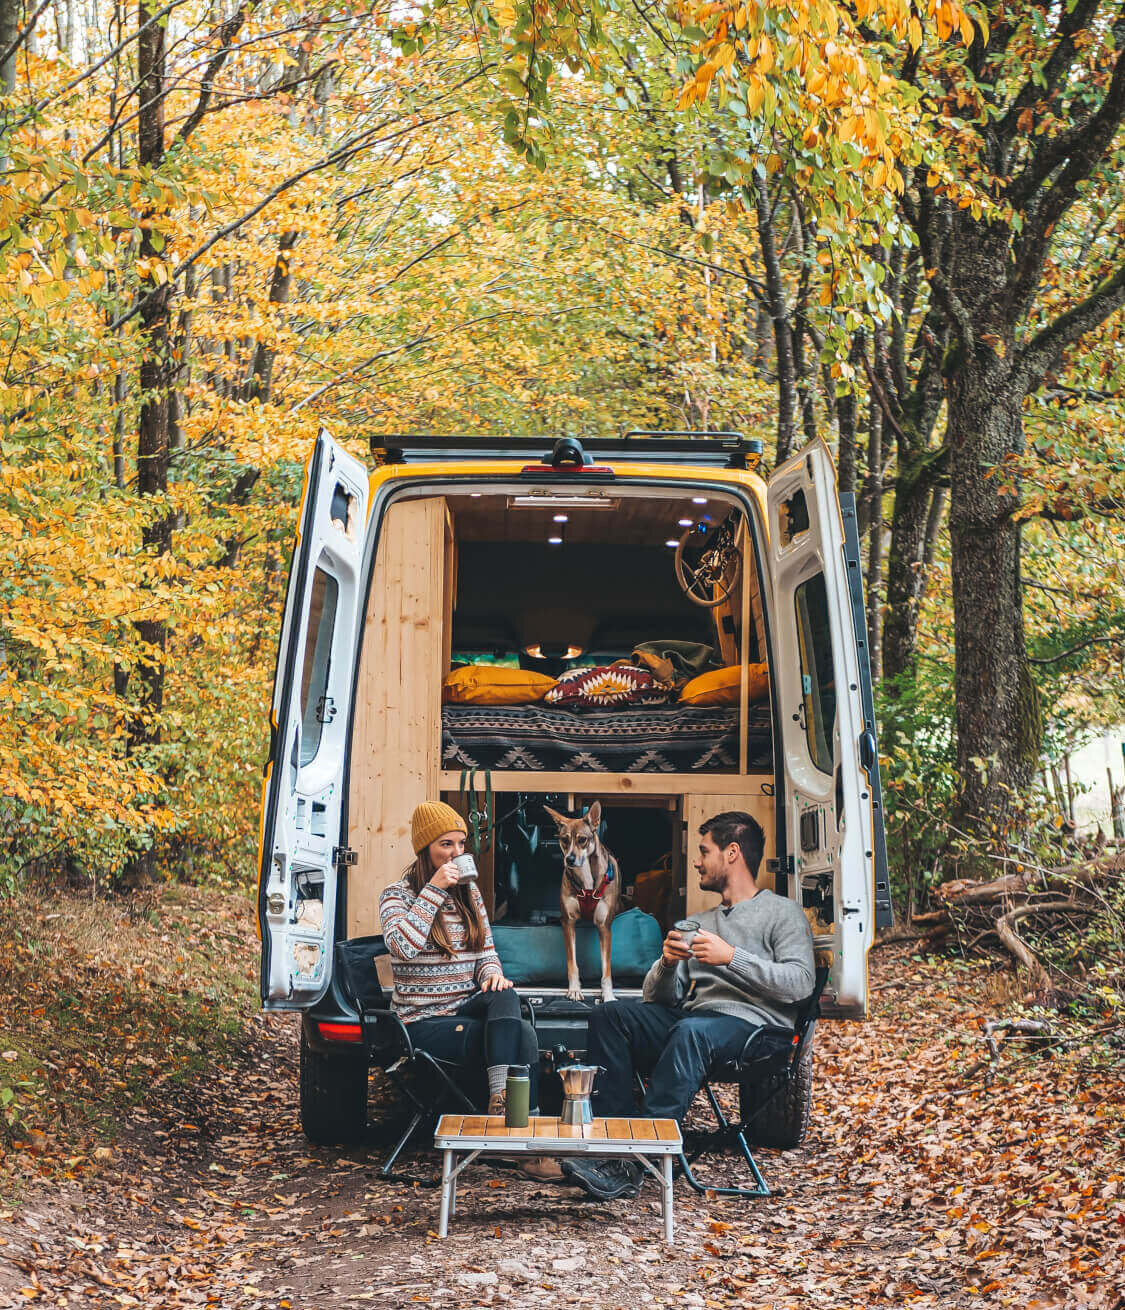 Home - Explore the Outdoors